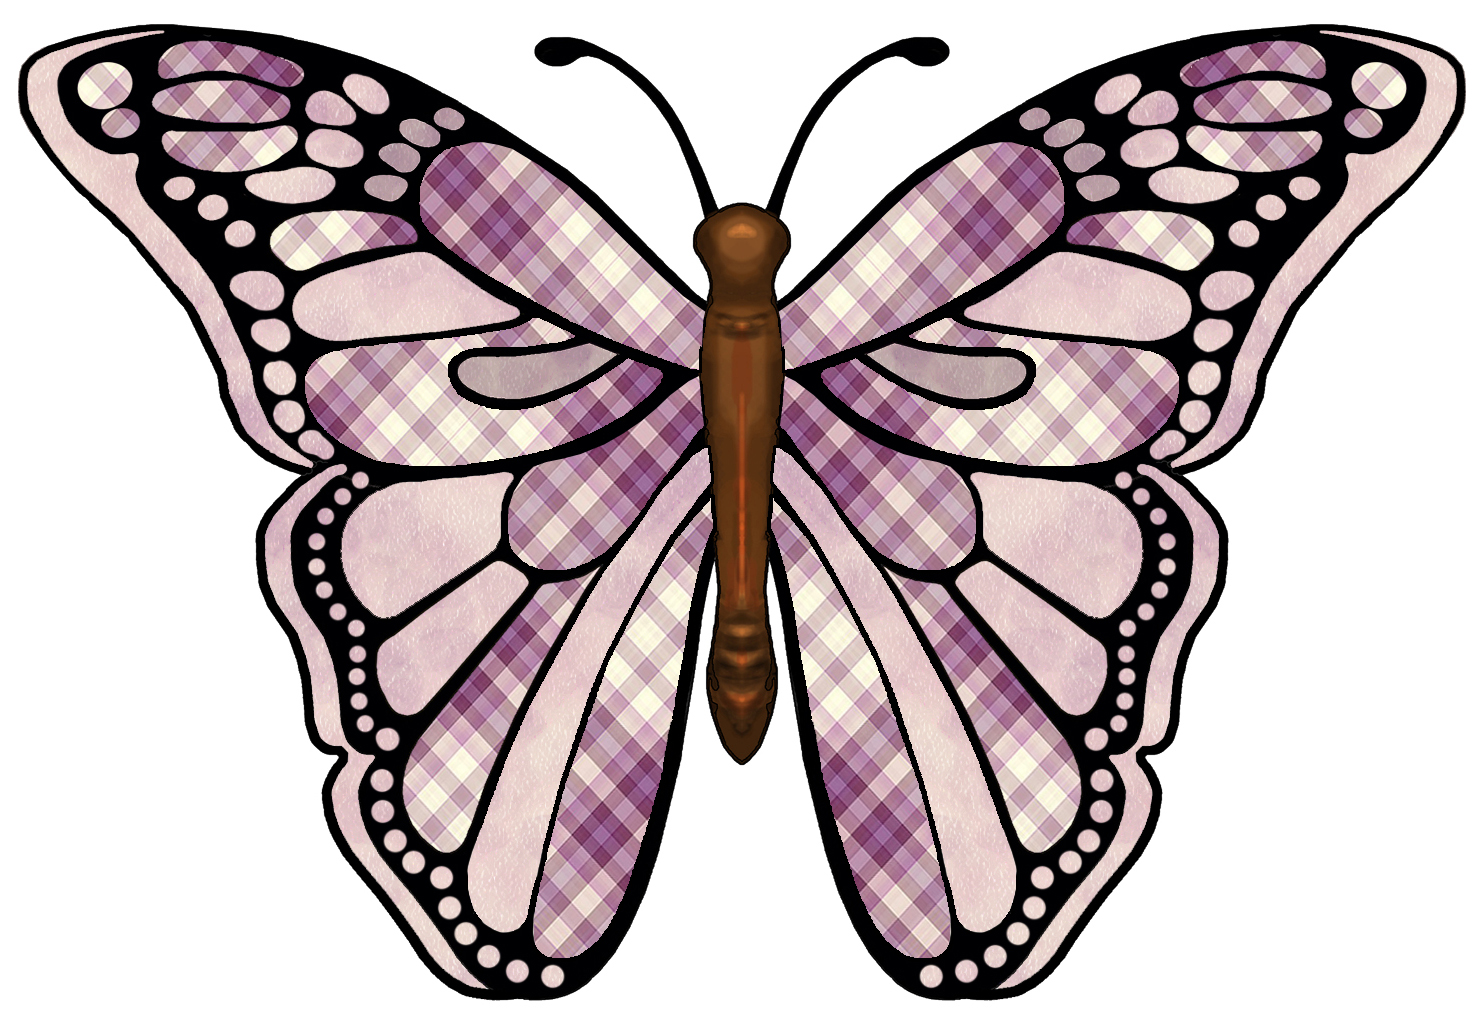 Pair wings clip art. Butterfly clipart angel